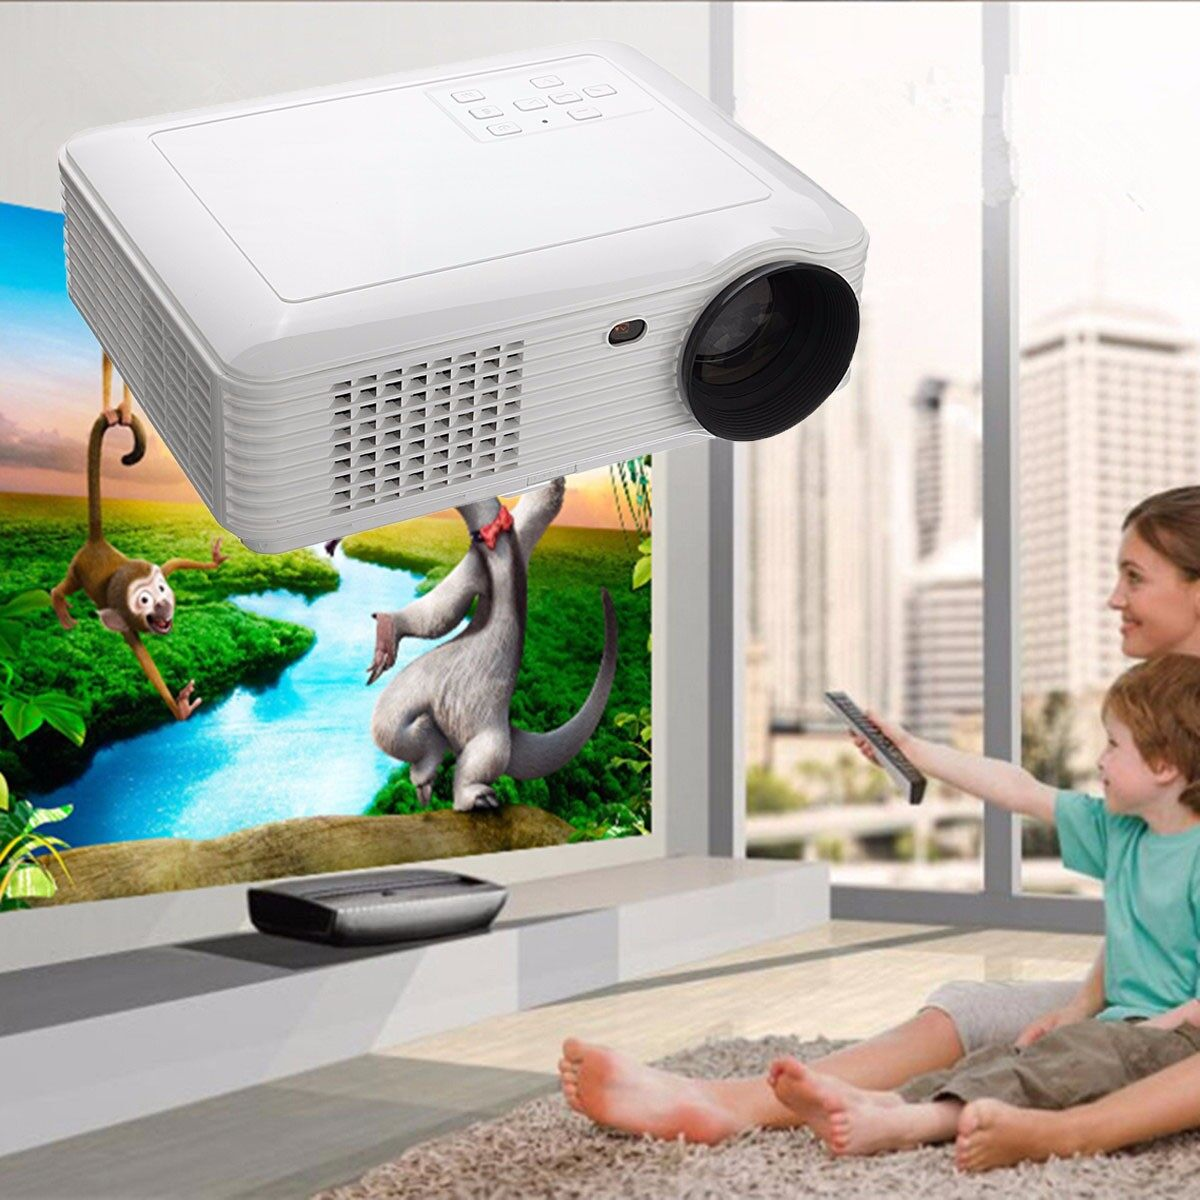 Full HD 1080P 5000 Lumens 3D LED Projector Home Cinema Theater Multimedia HDMI - intl